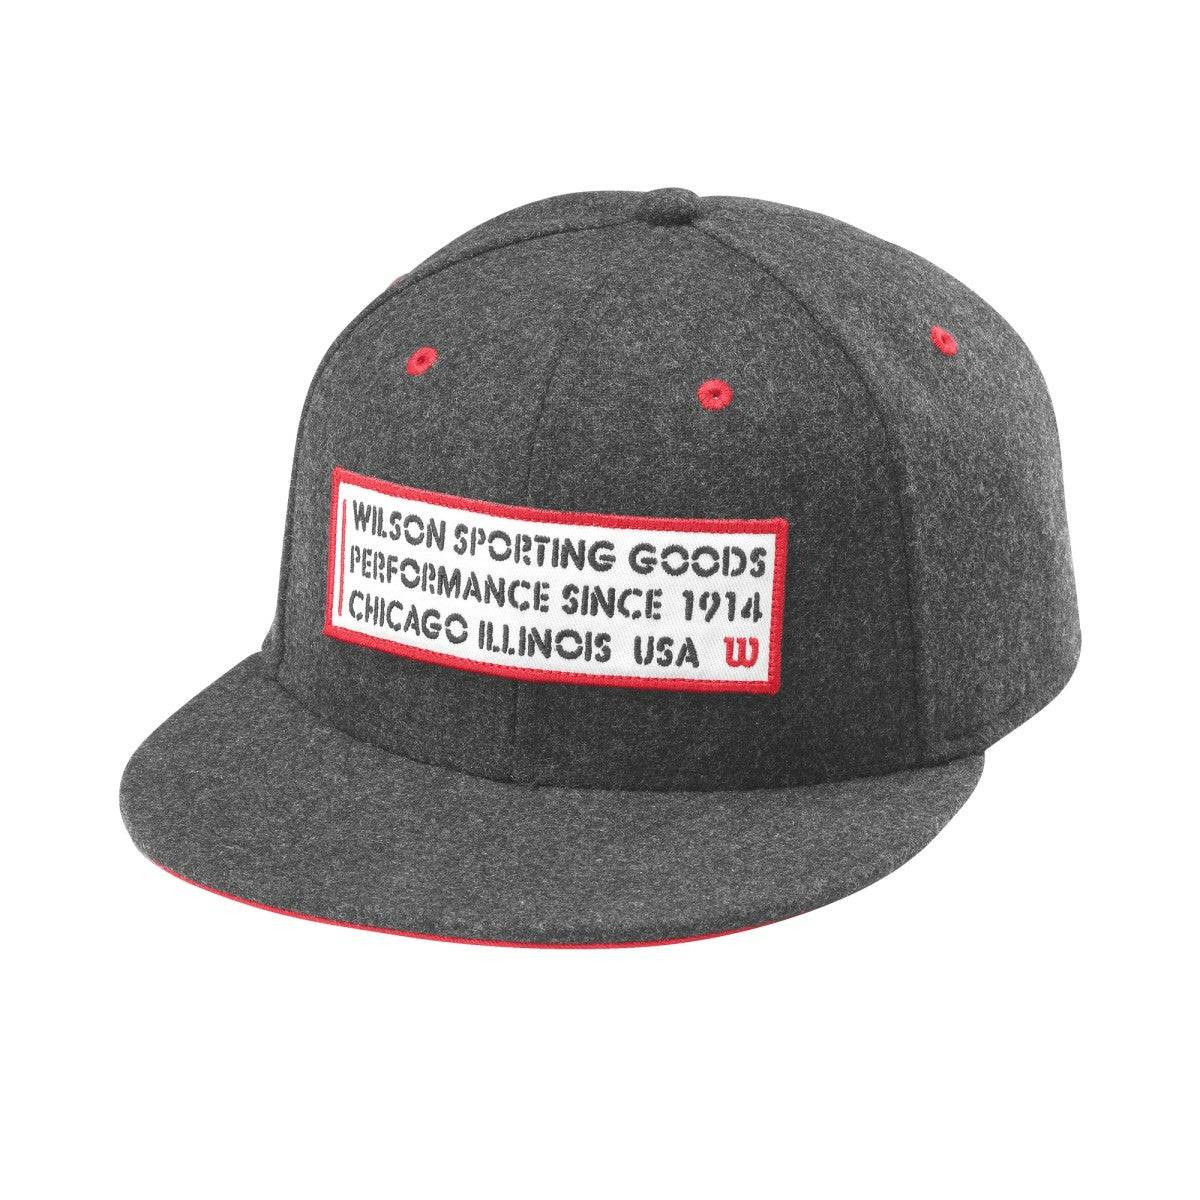 Wilson Since 1914 Hat in Charcoal Heather - Size: One Size Fits Most  - Unisex - Charcoal Heather - Size: One Size Fits Most